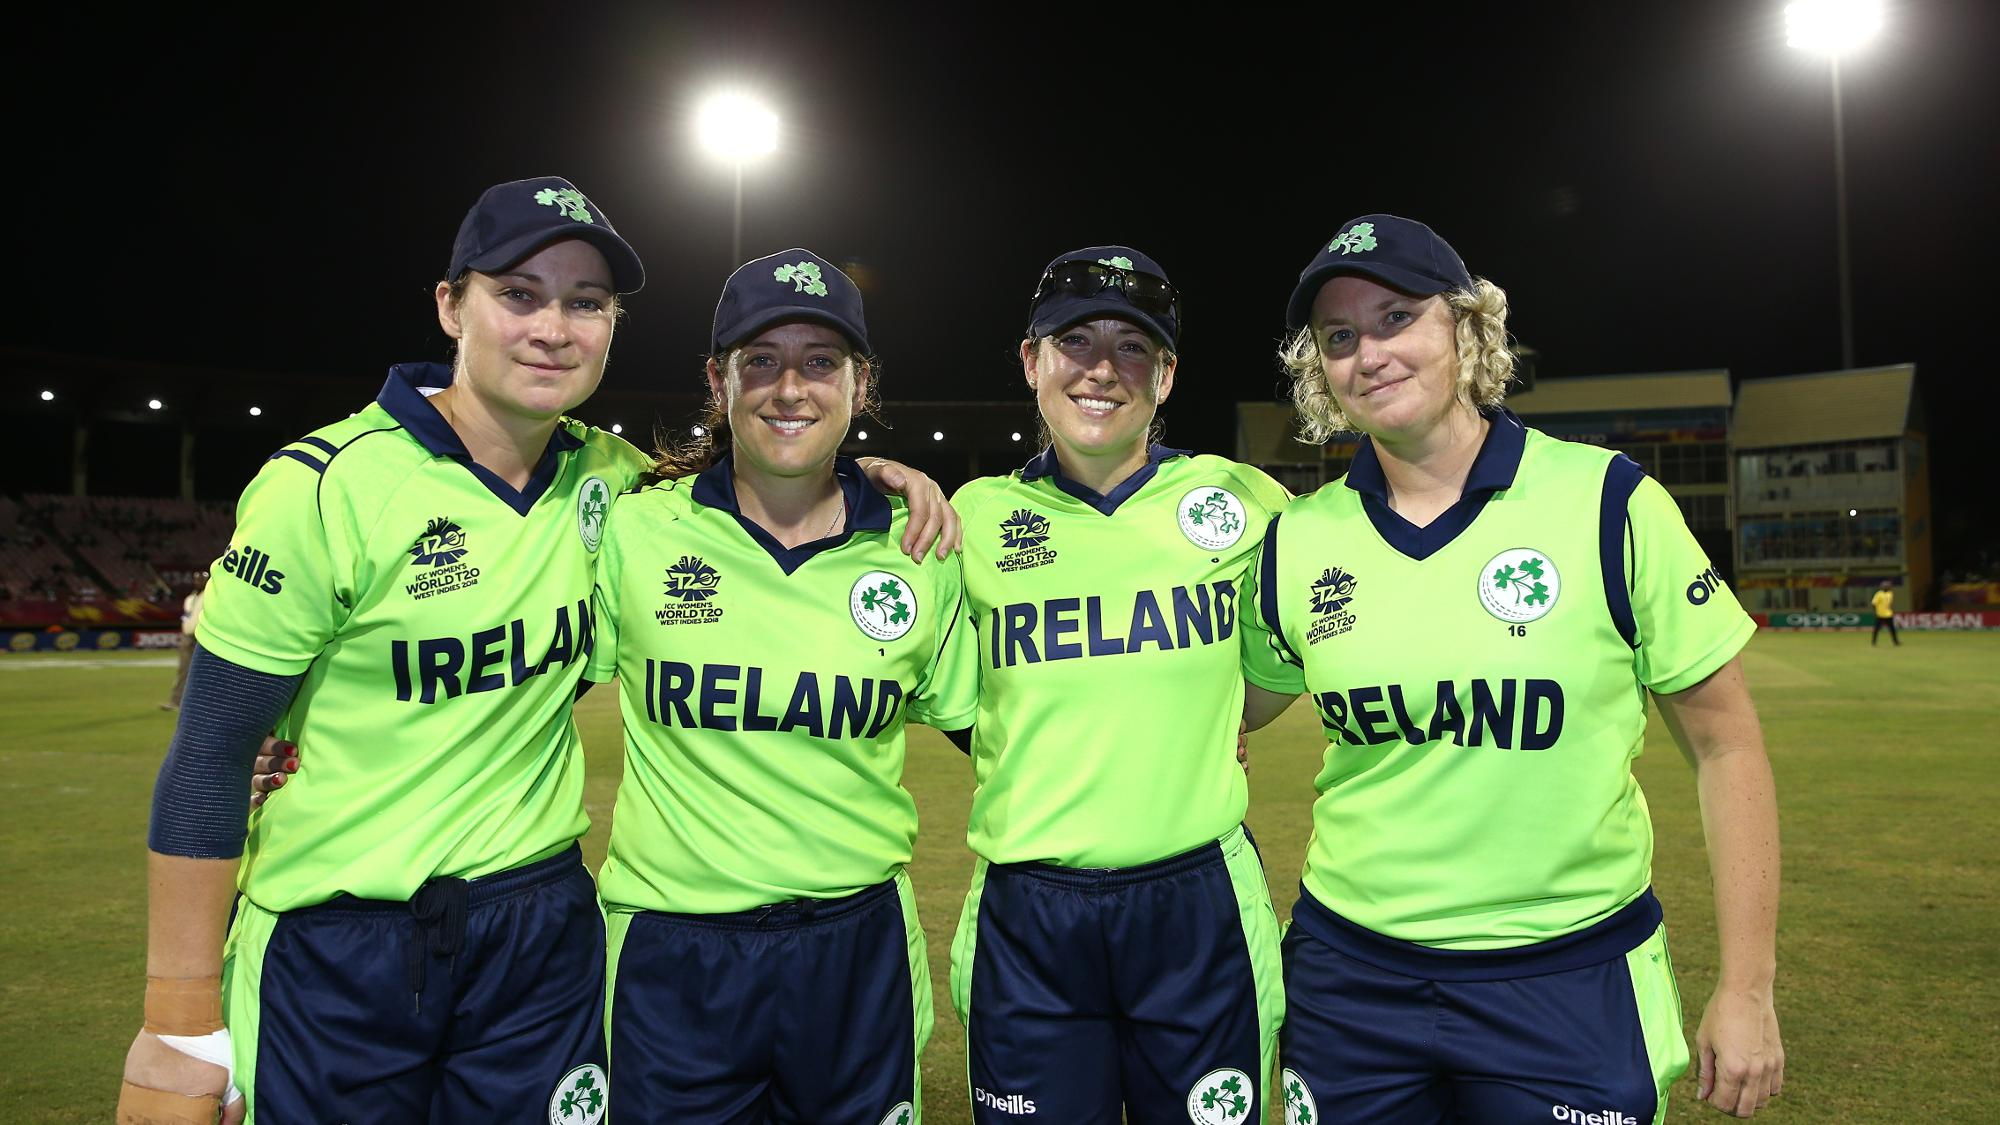 Emotional end of an era for Ireland cricket